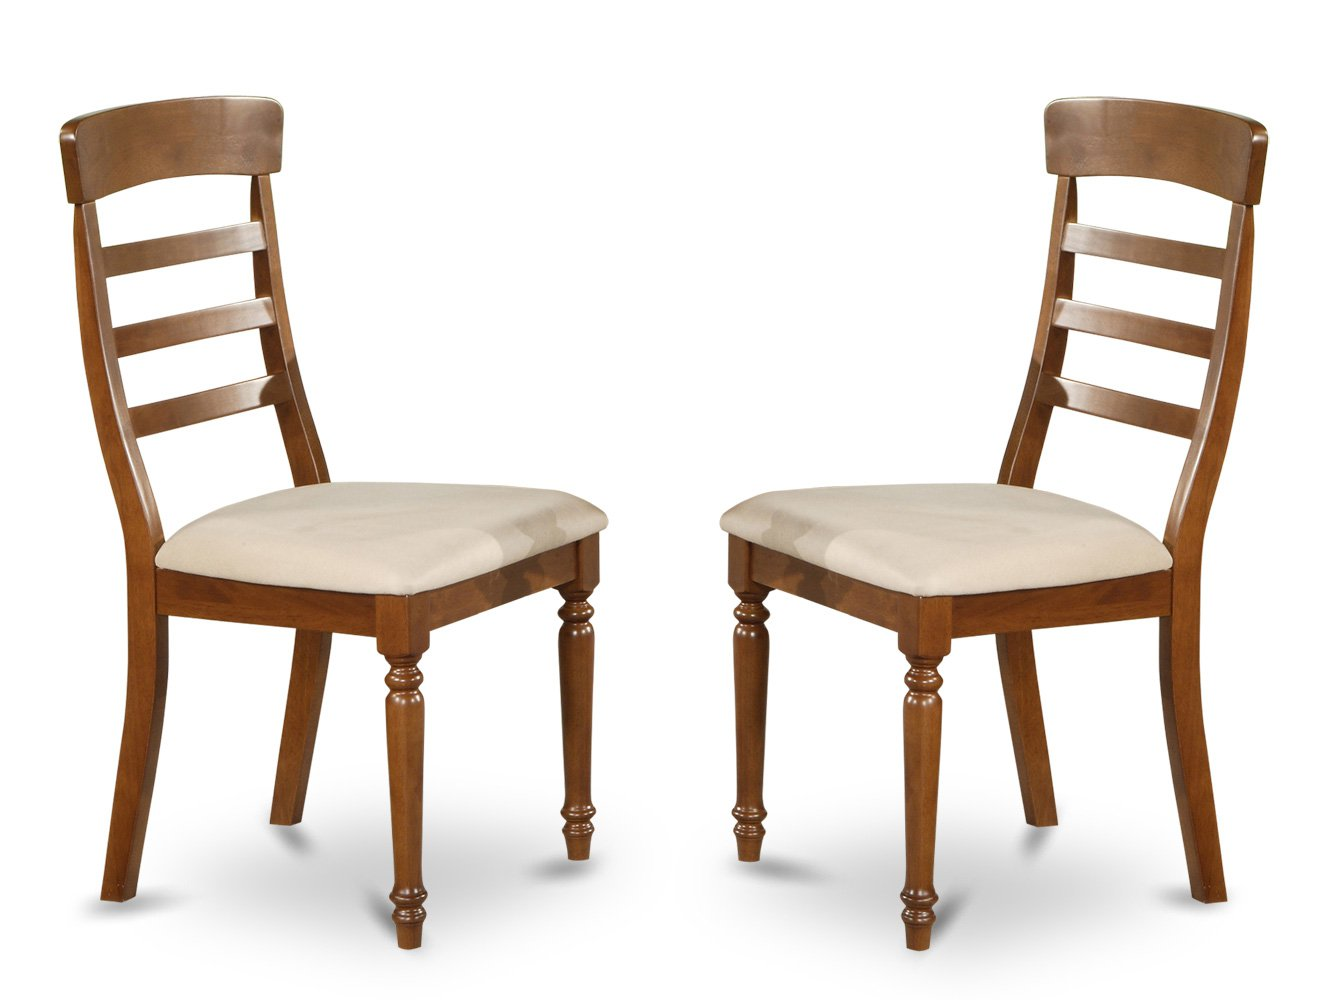 Set of 2 vintage  chairs dining room chairs with wood seat or cushion seat dark oak finish.